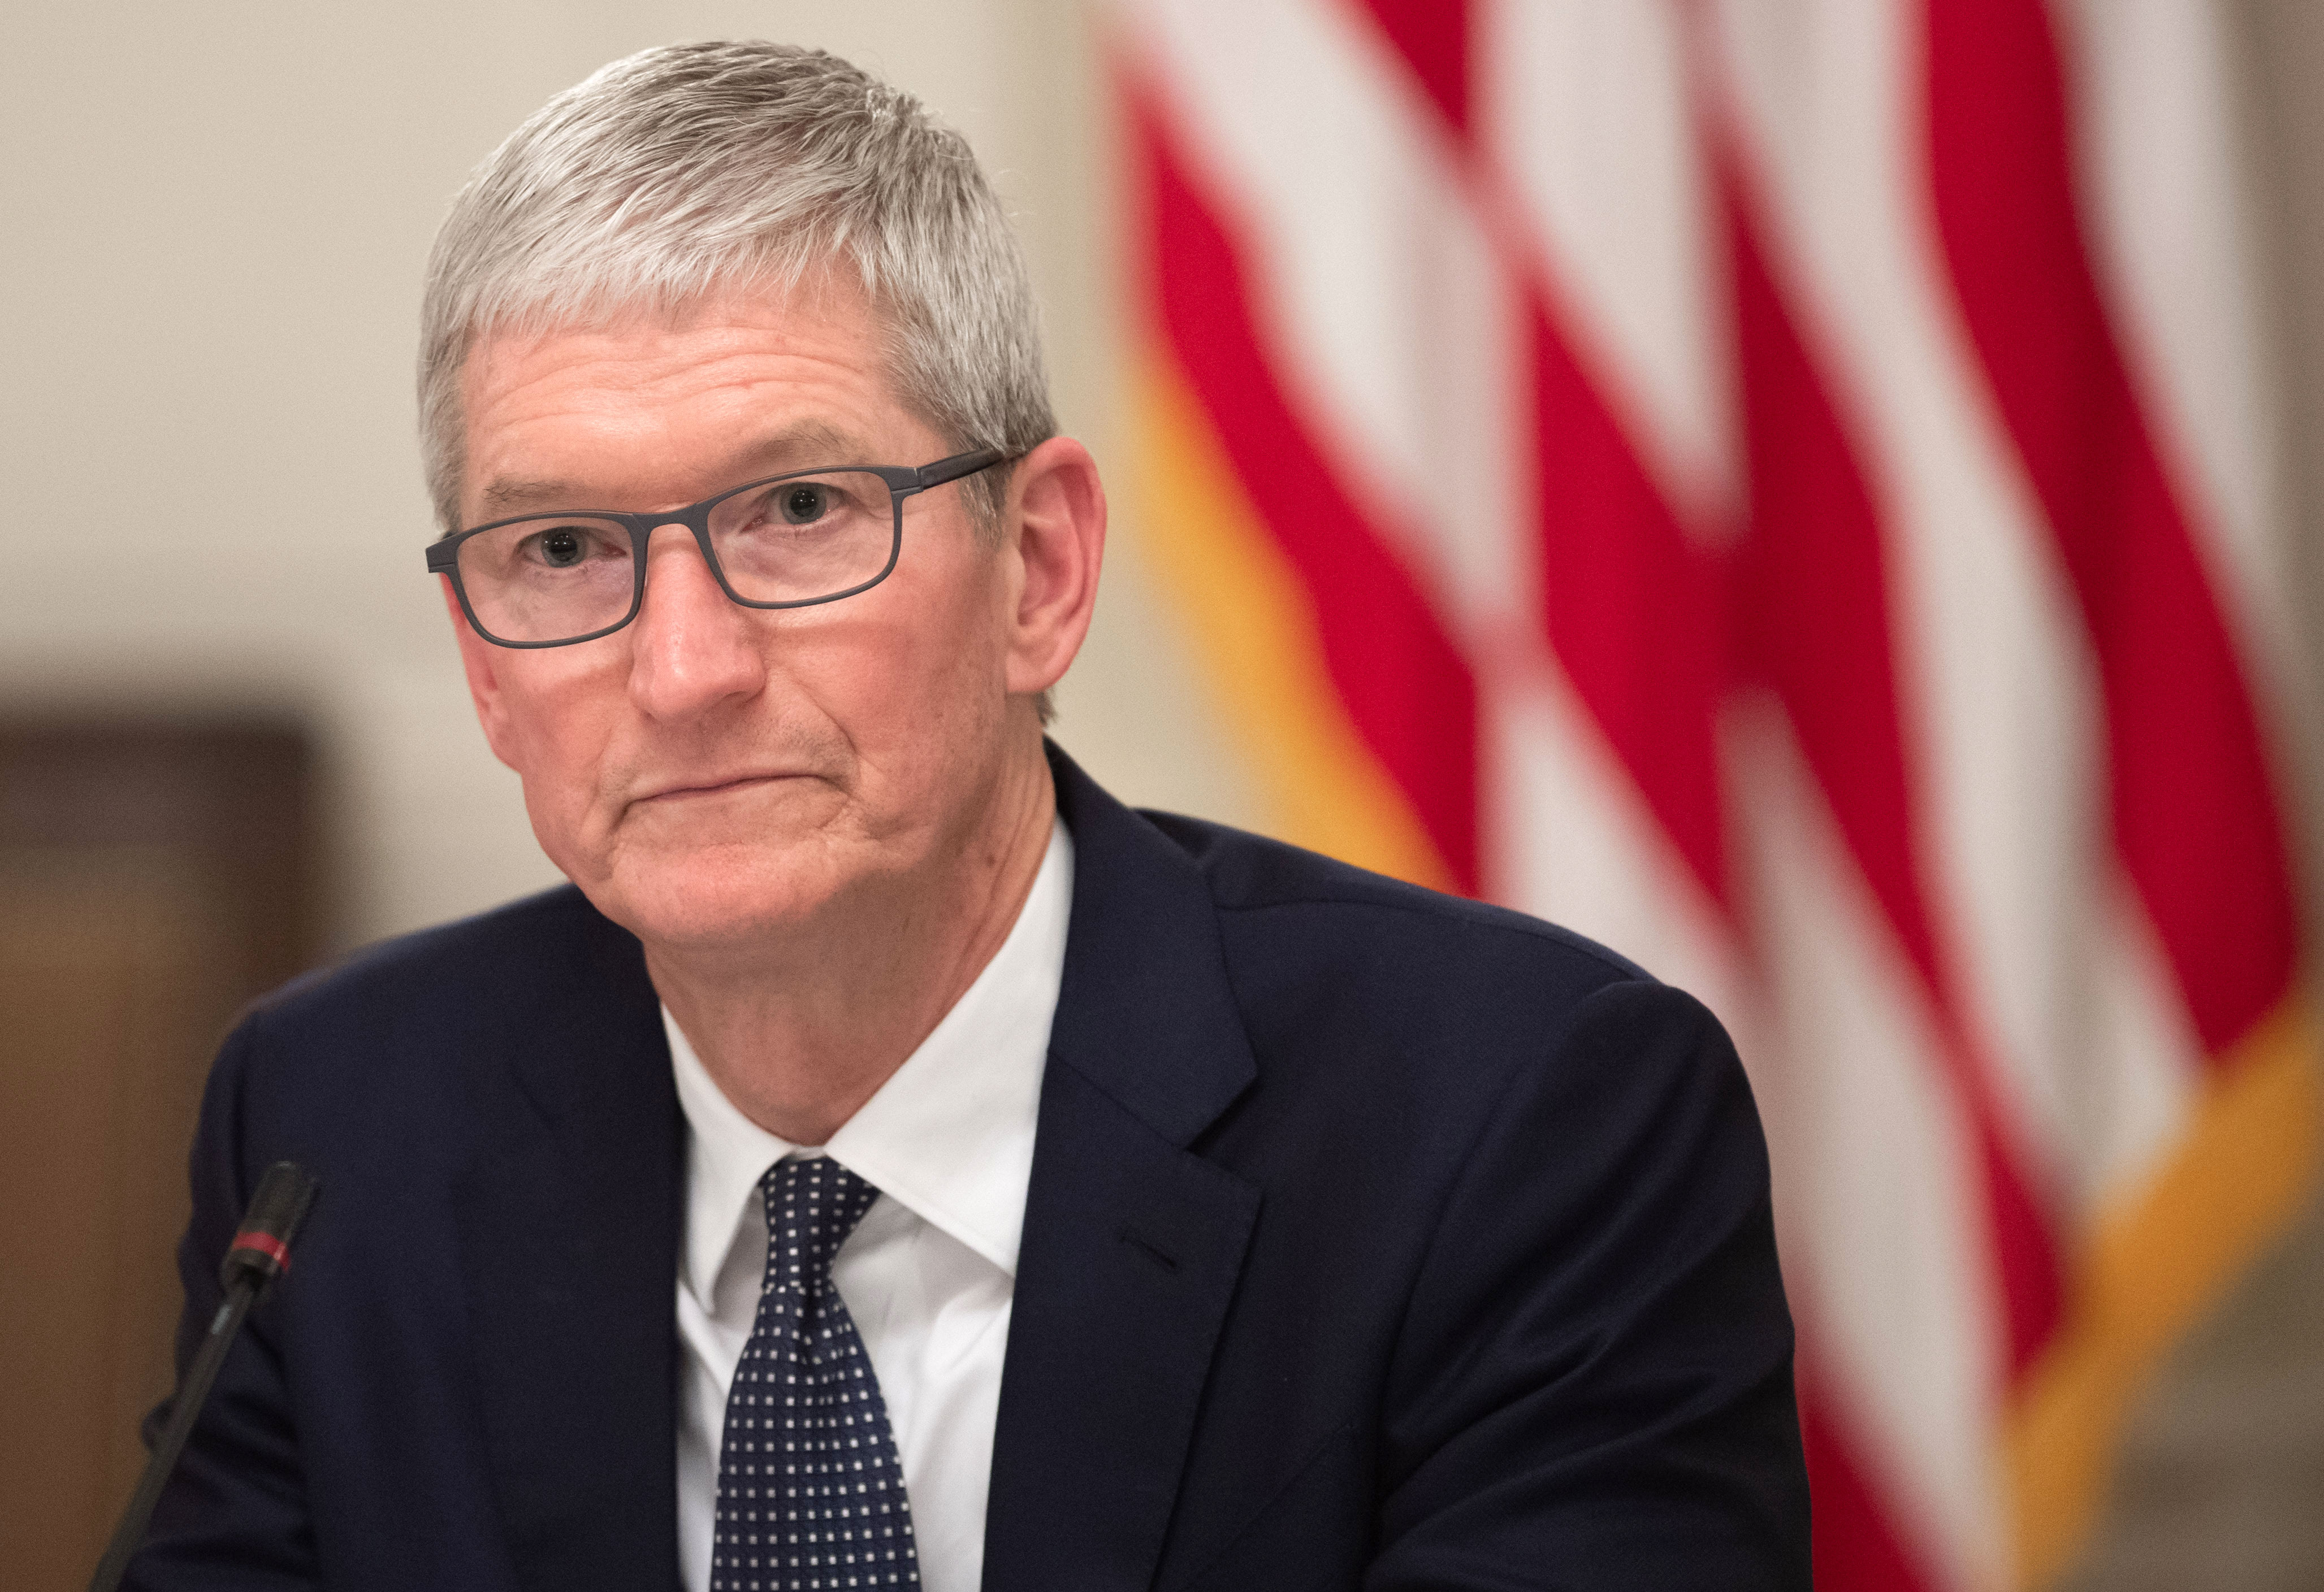 """Tim Cook React Sri Lanka Bombings - The Apple CEO shared on Twitter: """"We grieve for those affected by the violence and devastation of today's attacks in Sri Lanka. Today of all days we are reminded of the sacrifices that have been made for peace, and that love will always rise up and triumph over hate."""""""